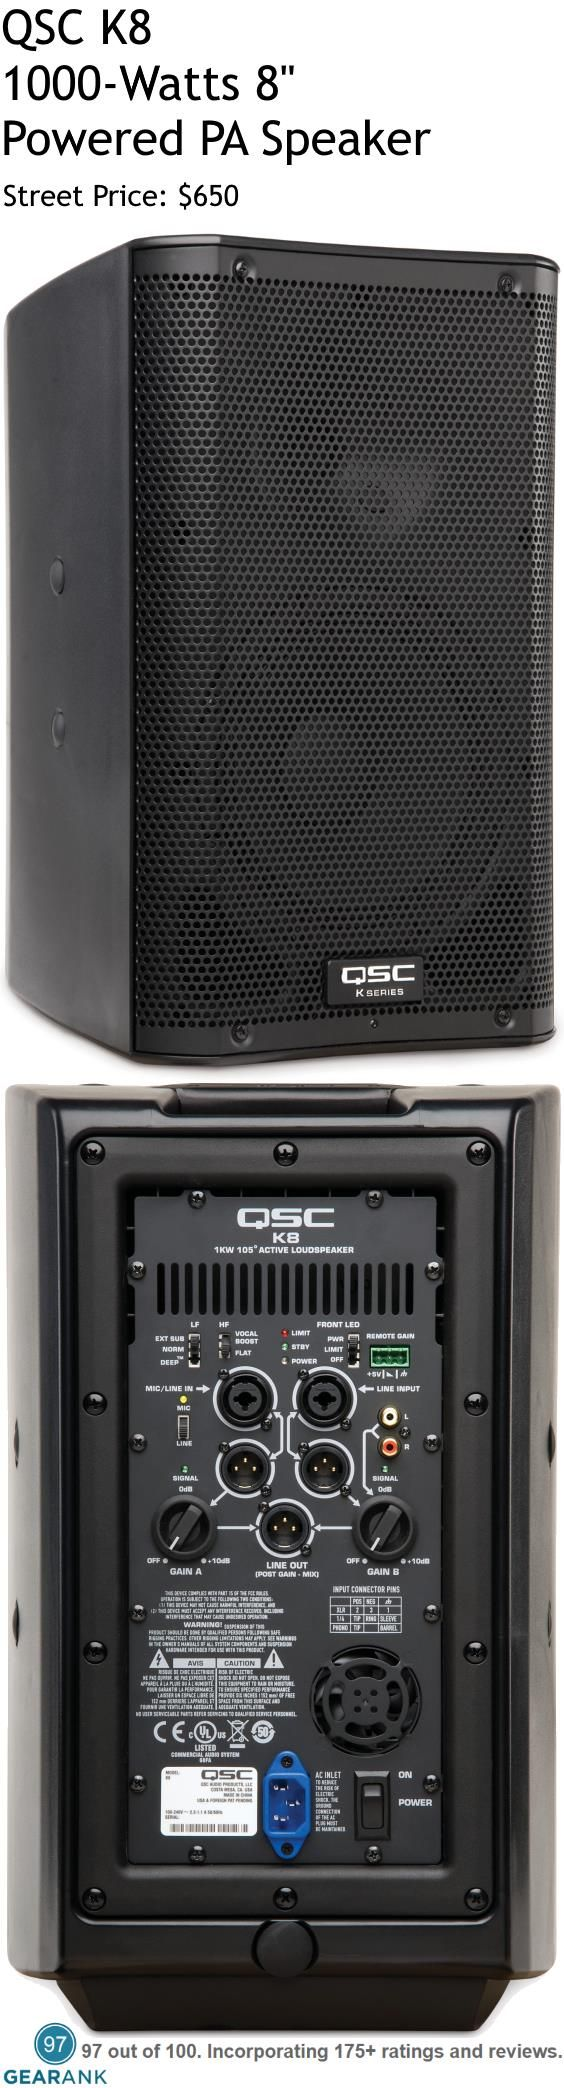 "QSC K8 8"" Powered PA Speaker - 1000W. For something small, the QSC K8 packs quite the punch, with 127 dB Max SPL, just two decibels short of the bigger 10"" model. This means that the K8 is capable of handling singer-songwriters, electronic musicians and it is even used by 5-piece bands as main PA speakers,  For a Detailed Guide to Powered PA Speakers see https://www.gearank.com/guides/powered-pa-speakers"